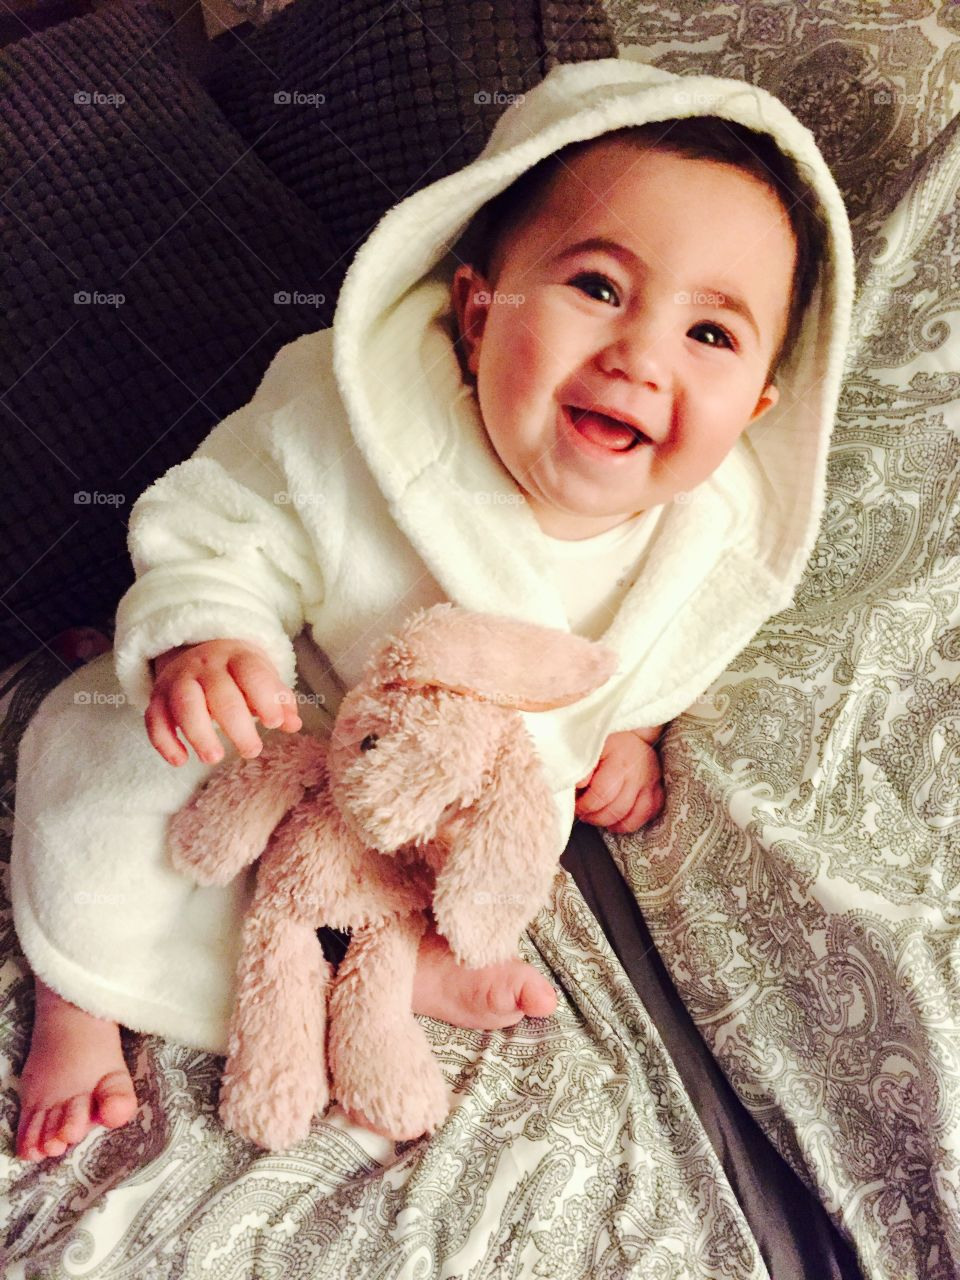 Smiling baby girl in a white fluffy robe